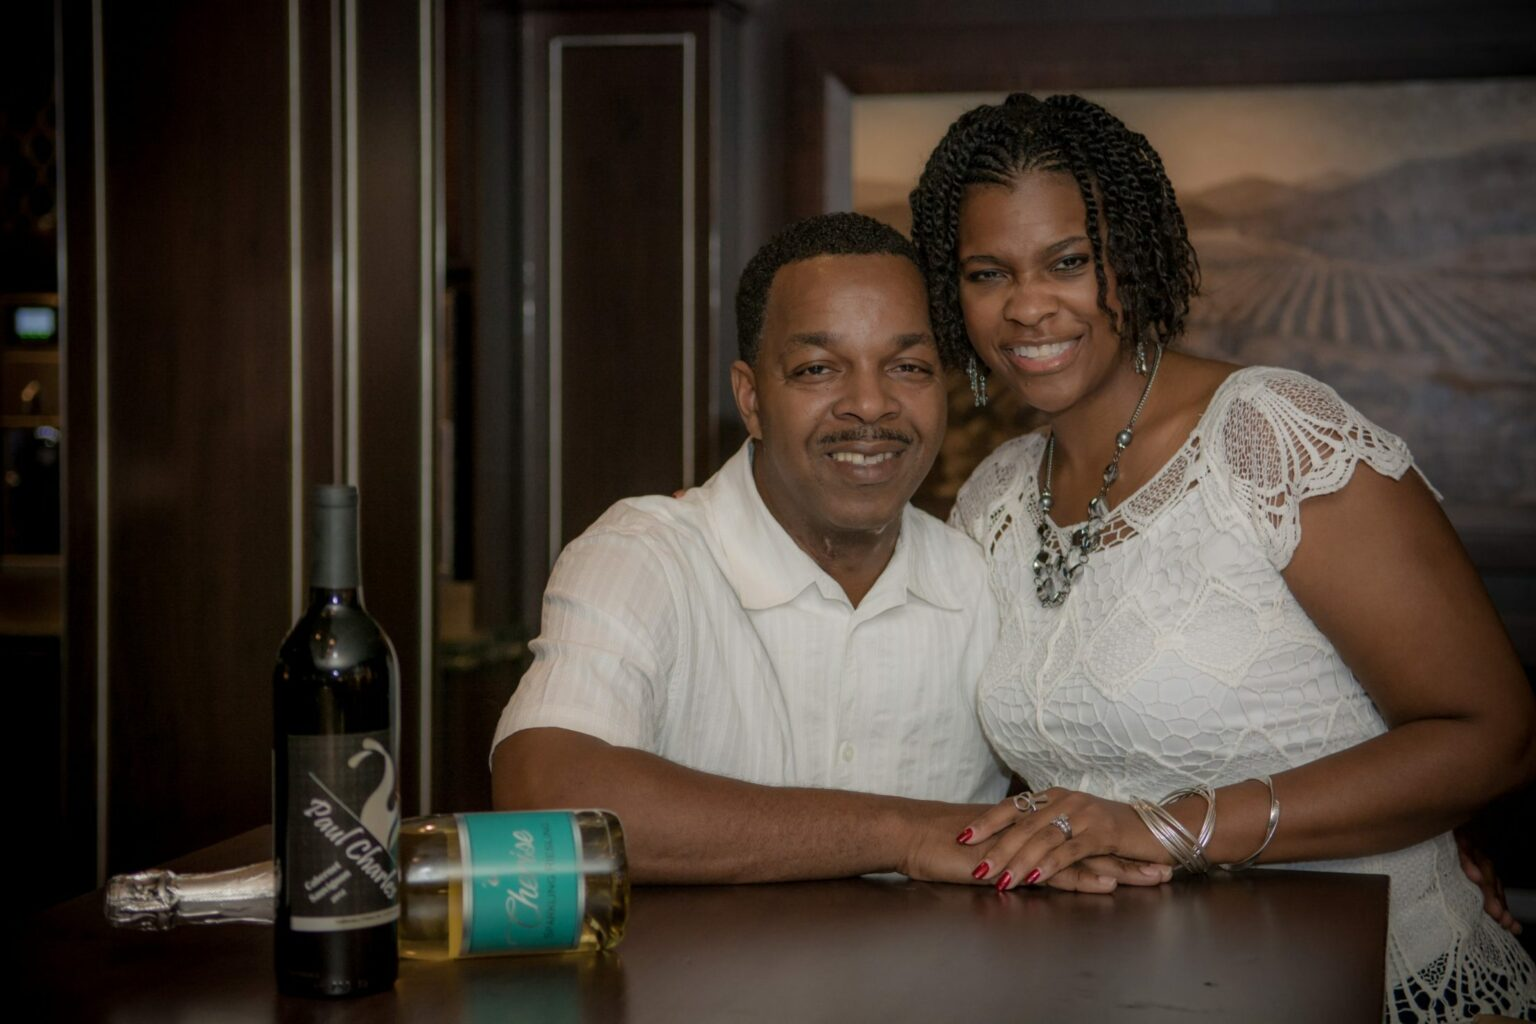 Paul and Cherisse Charles of Charles Wine Co.